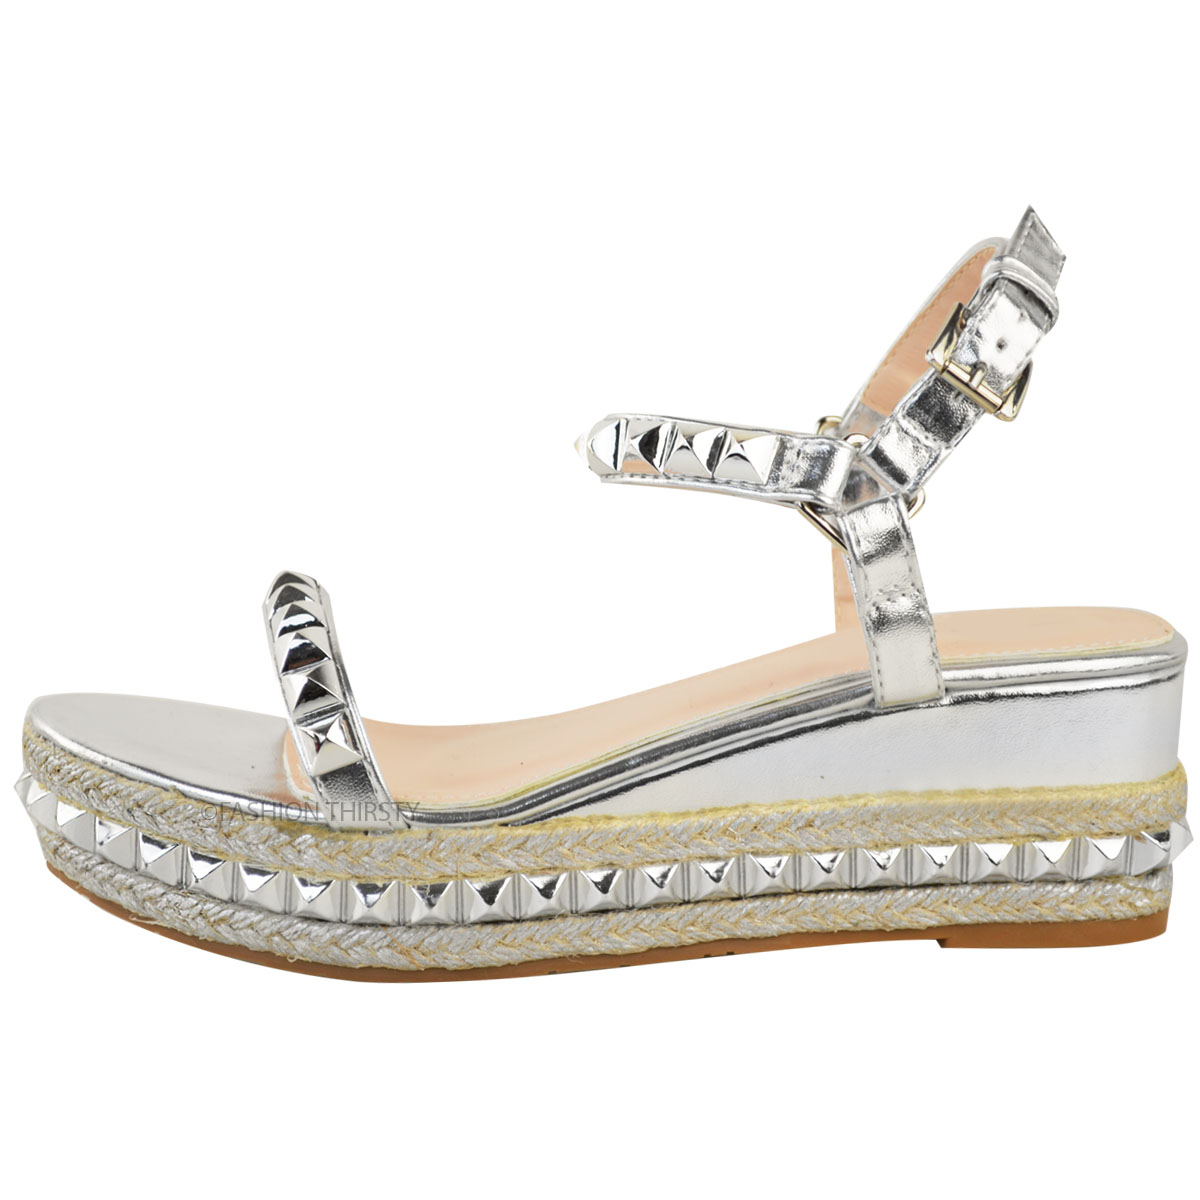 Ladies-Womens-Studded-Low-Wedge-Espadrille-Sandals-Platform-Rose-Gold-Shoes-Size thumbnail 10